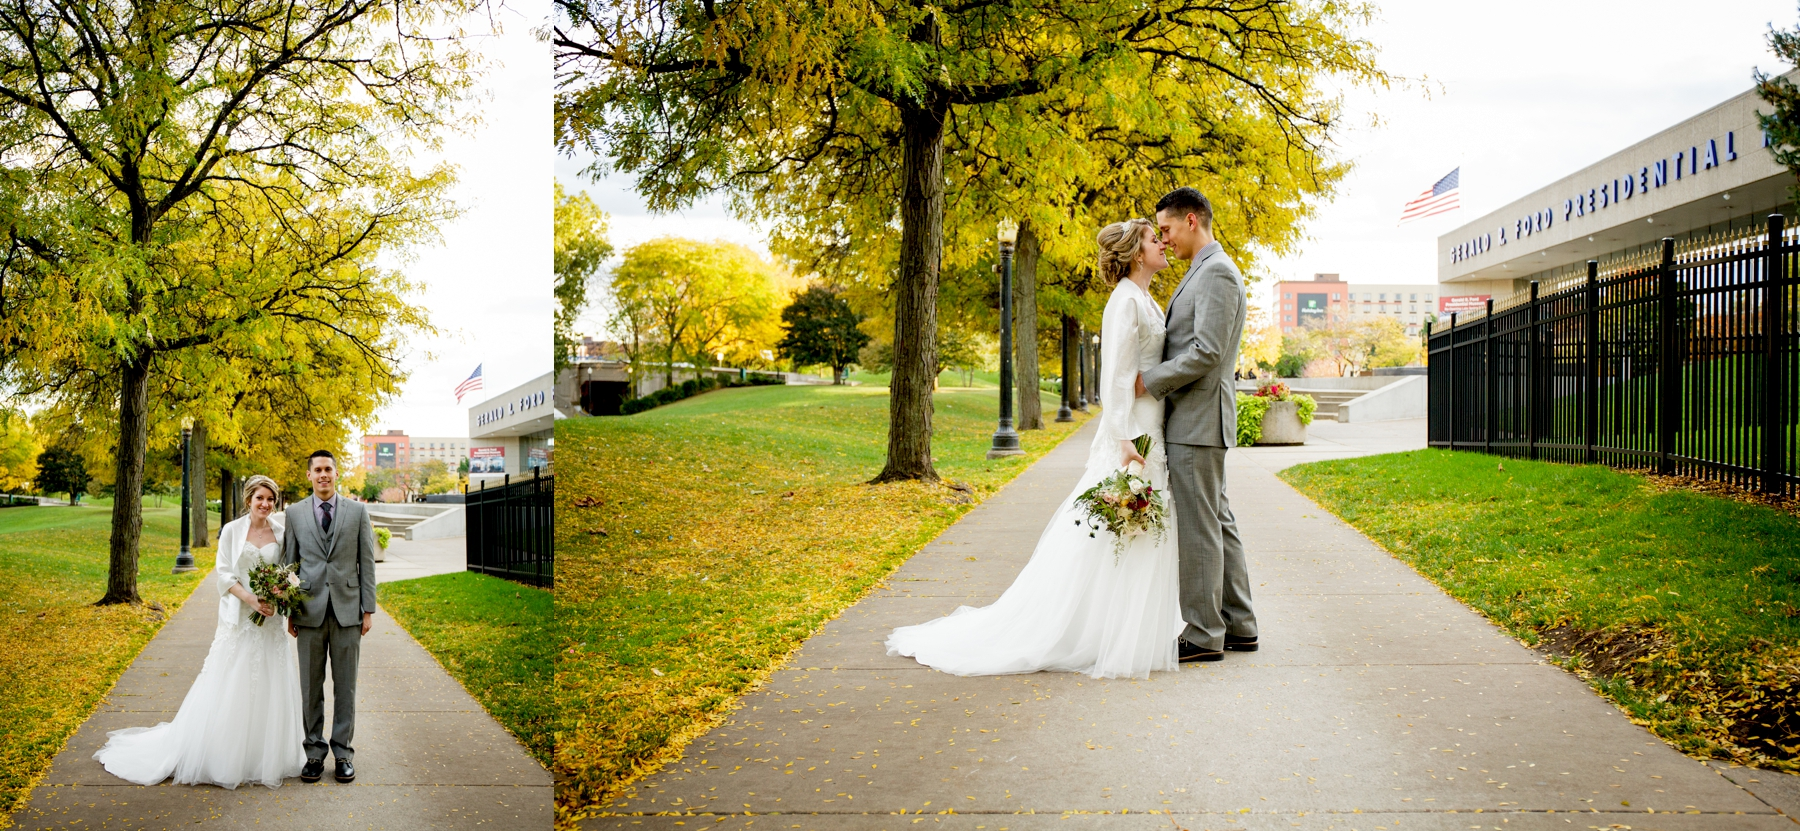 Brandon_Shafer_Photography_Kristen_Corey_Downtown_Grand_Rapids_Fall_Wedding0037.JPG